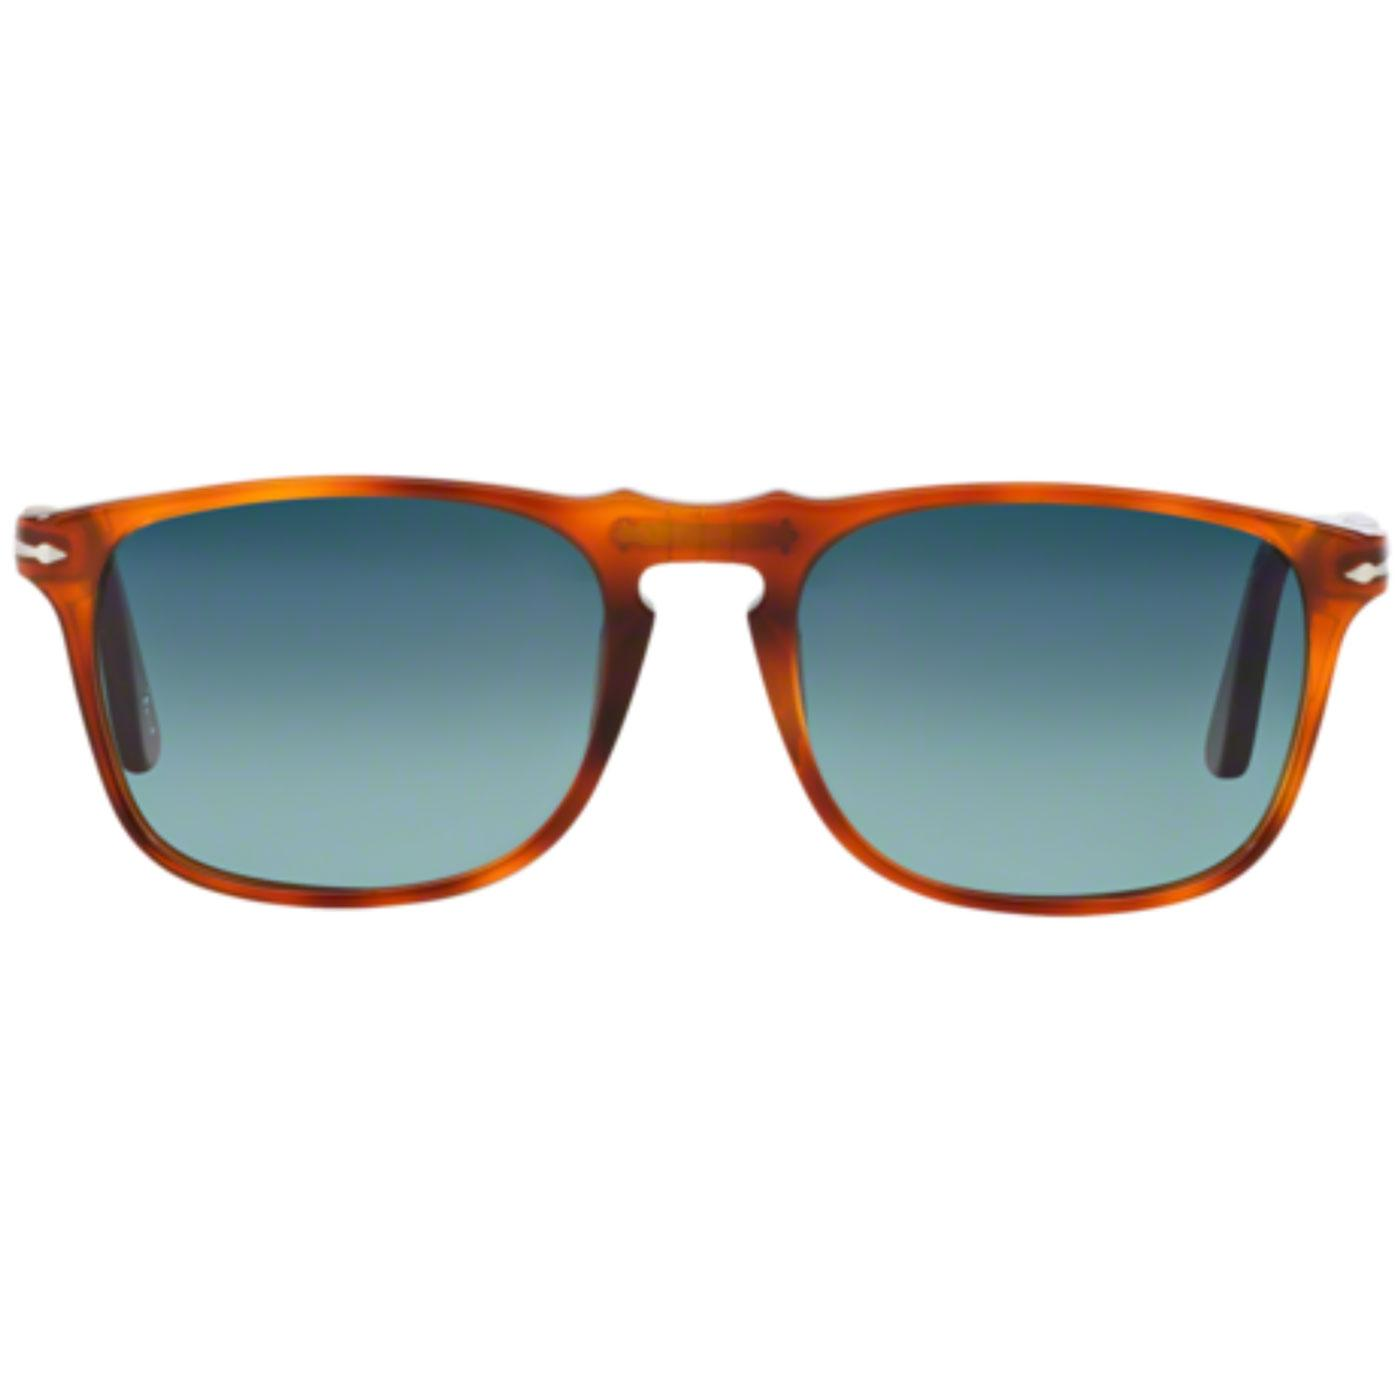 PERSOL Retro Polarised Terra Di Siena Sunglasses